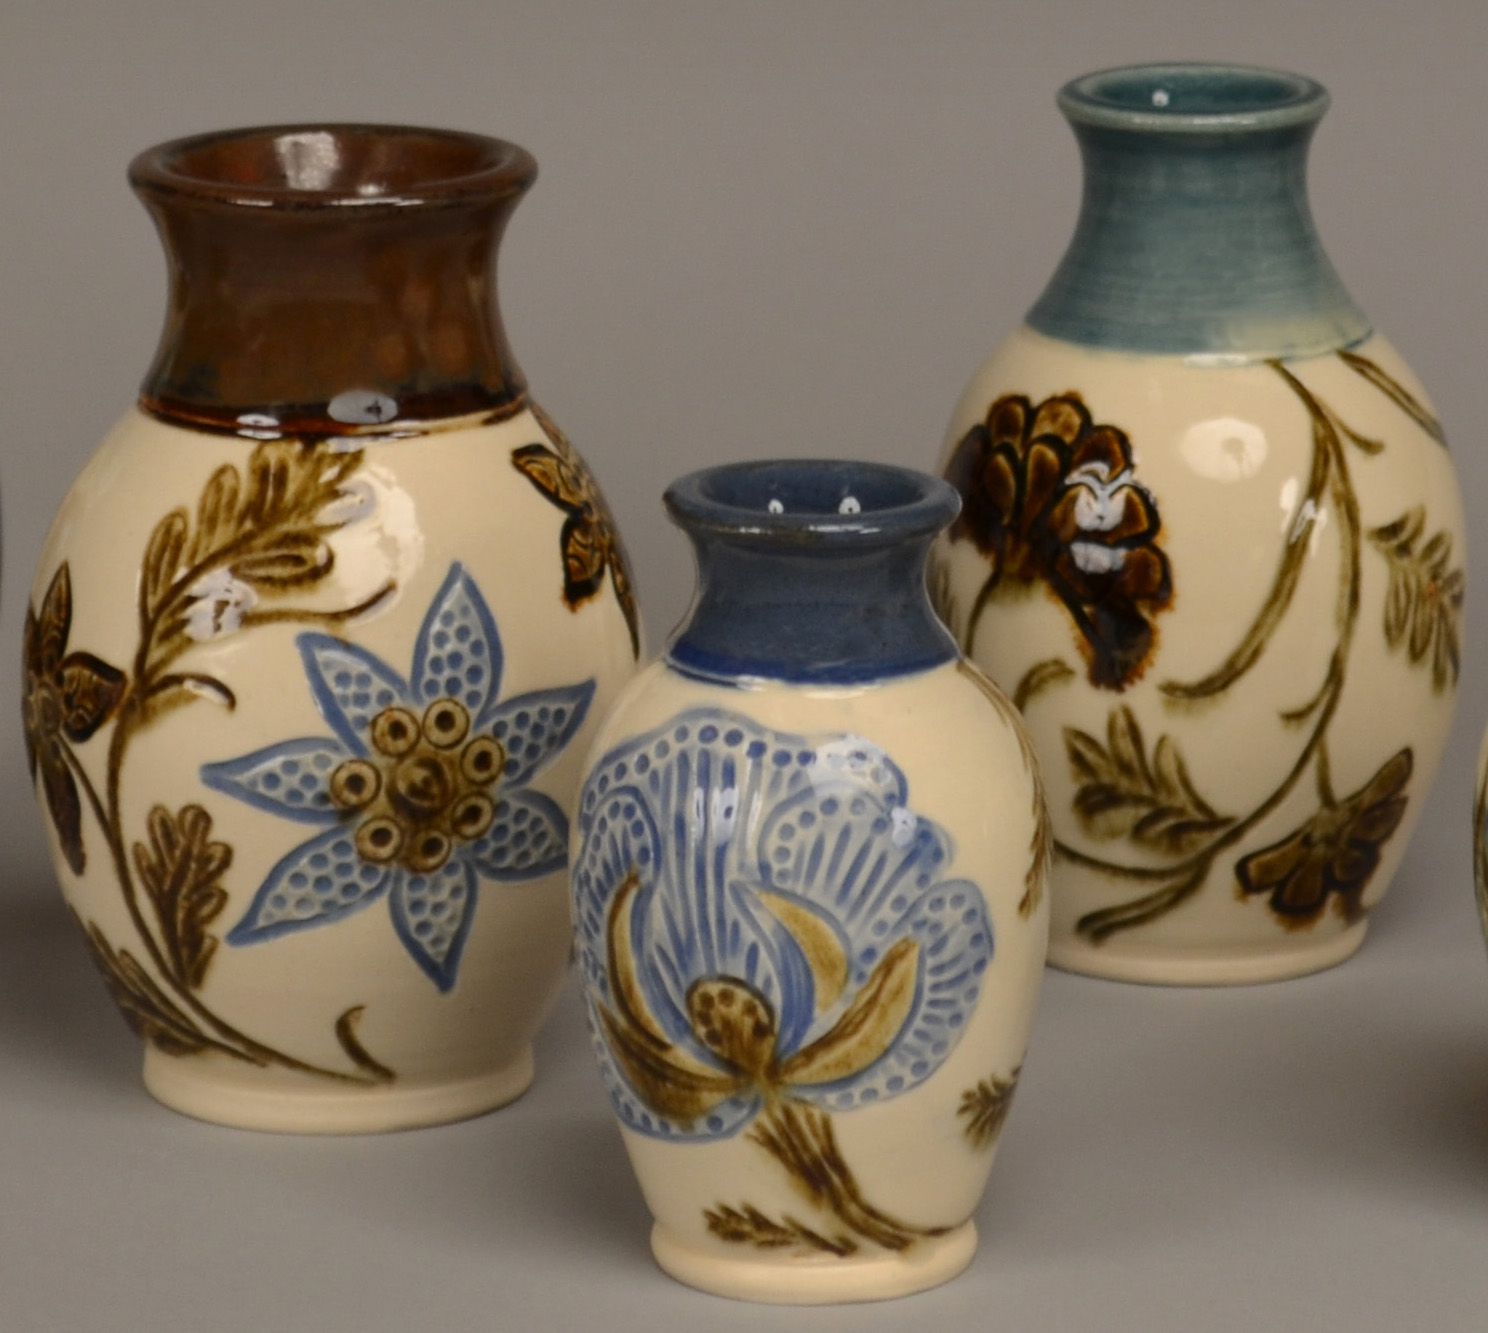 Vases group 1